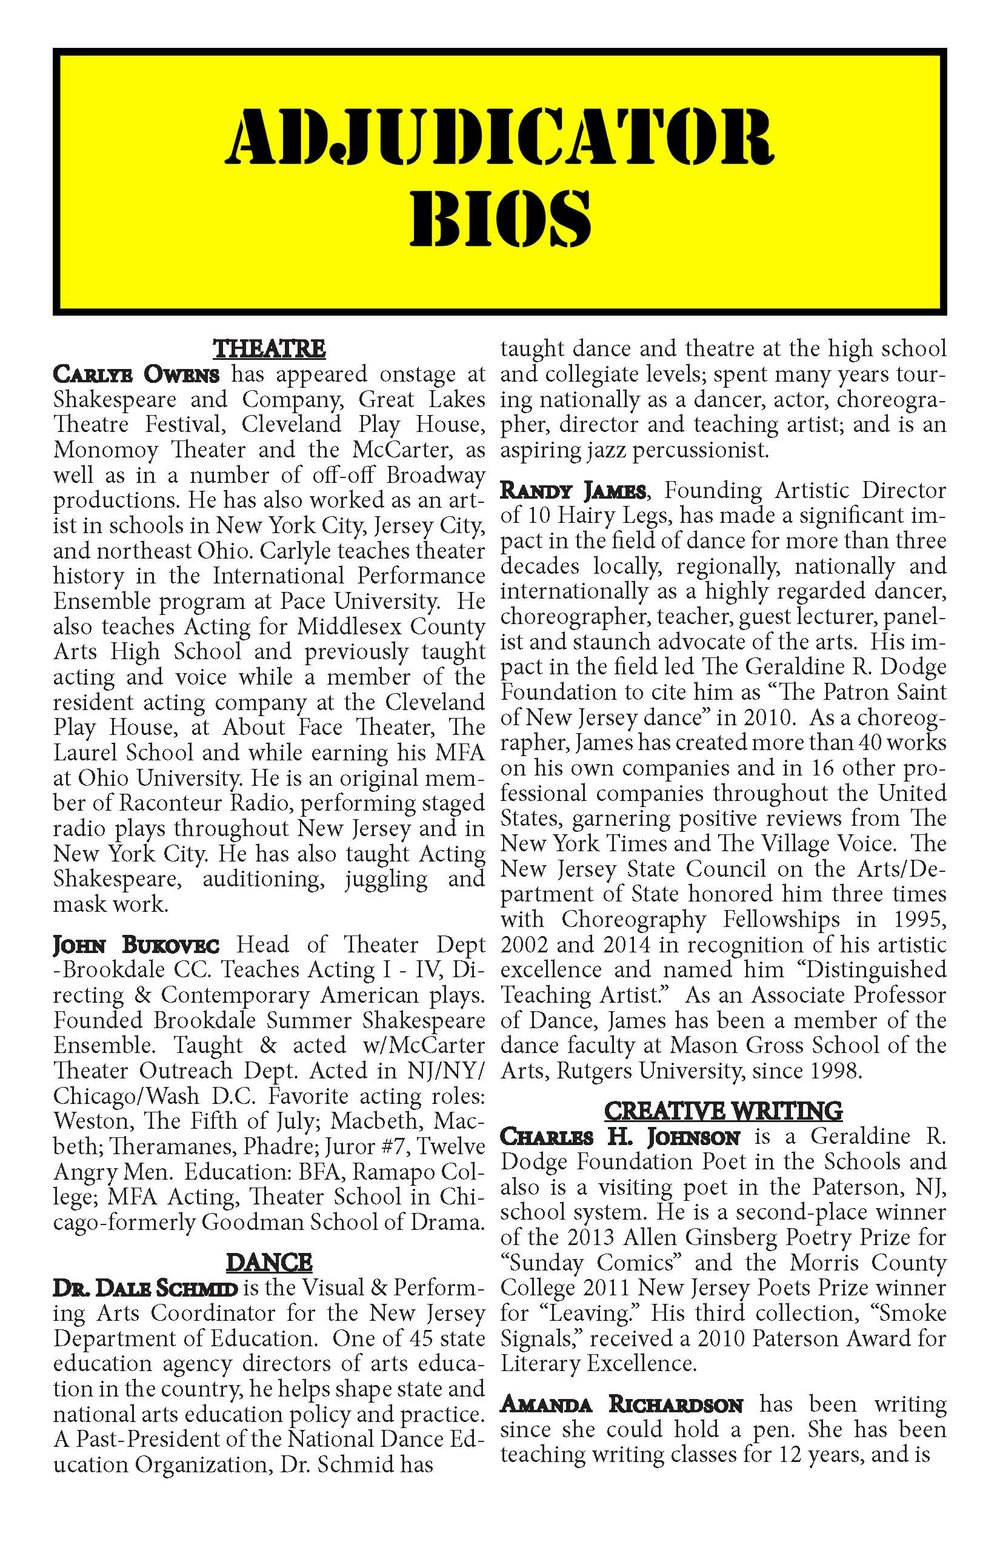 State Festival Program FINAL DRAFT_Page_22.jpg